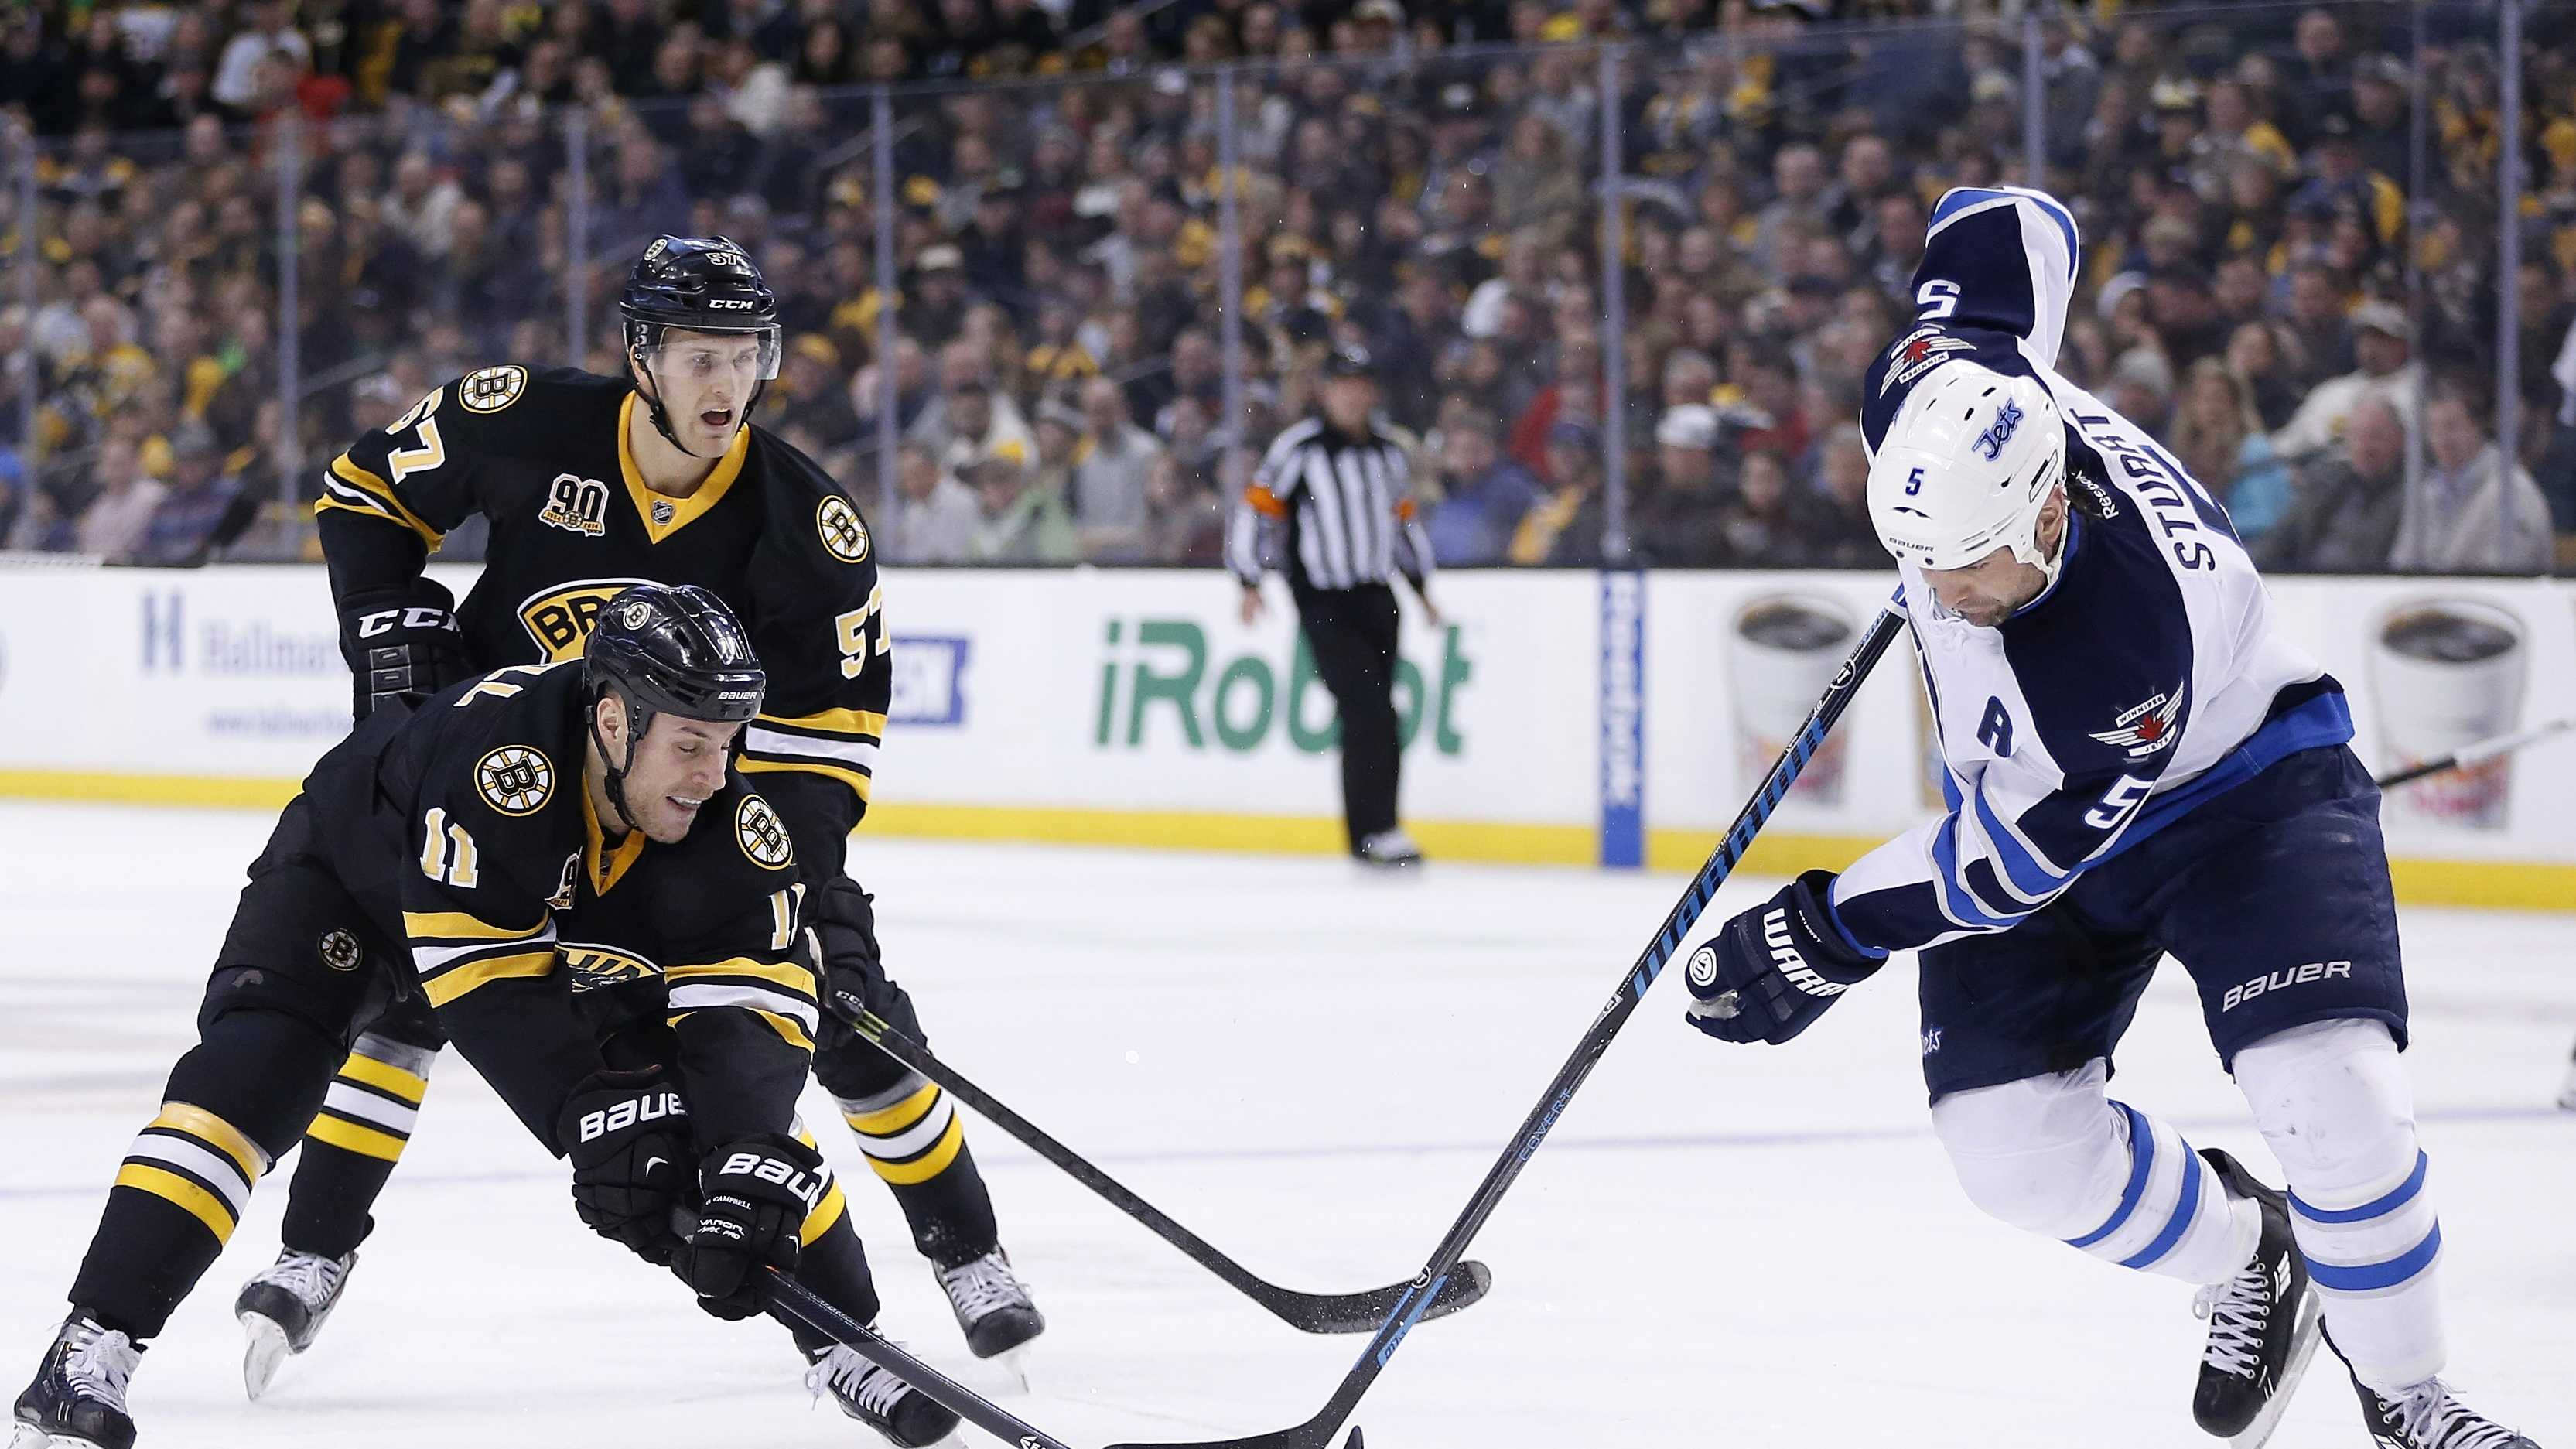 Boston Bruins' Gregory Campbell (11) and Winnipeg Jets' Mark Stuart (5) battle for the puck in the second period of an NHL hockey game in Boston, Saturday, Jan. 4, 2014.